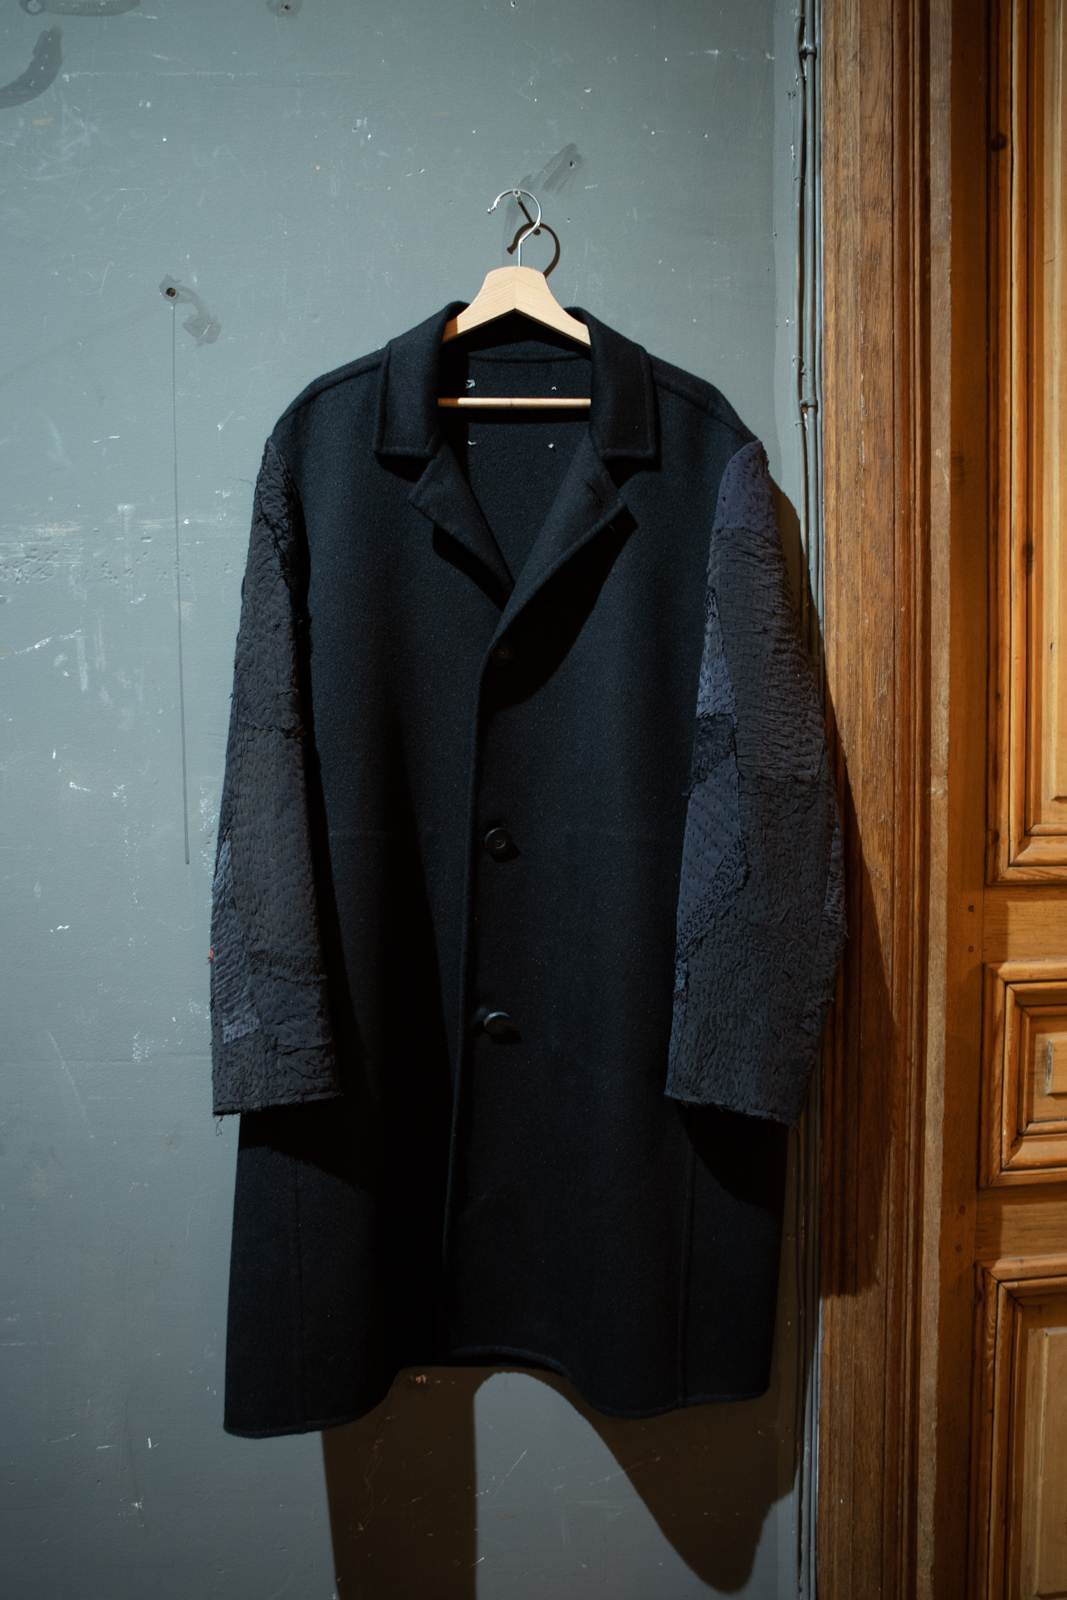 By Walid Patchwork Contrast Sleeve Coat FW20